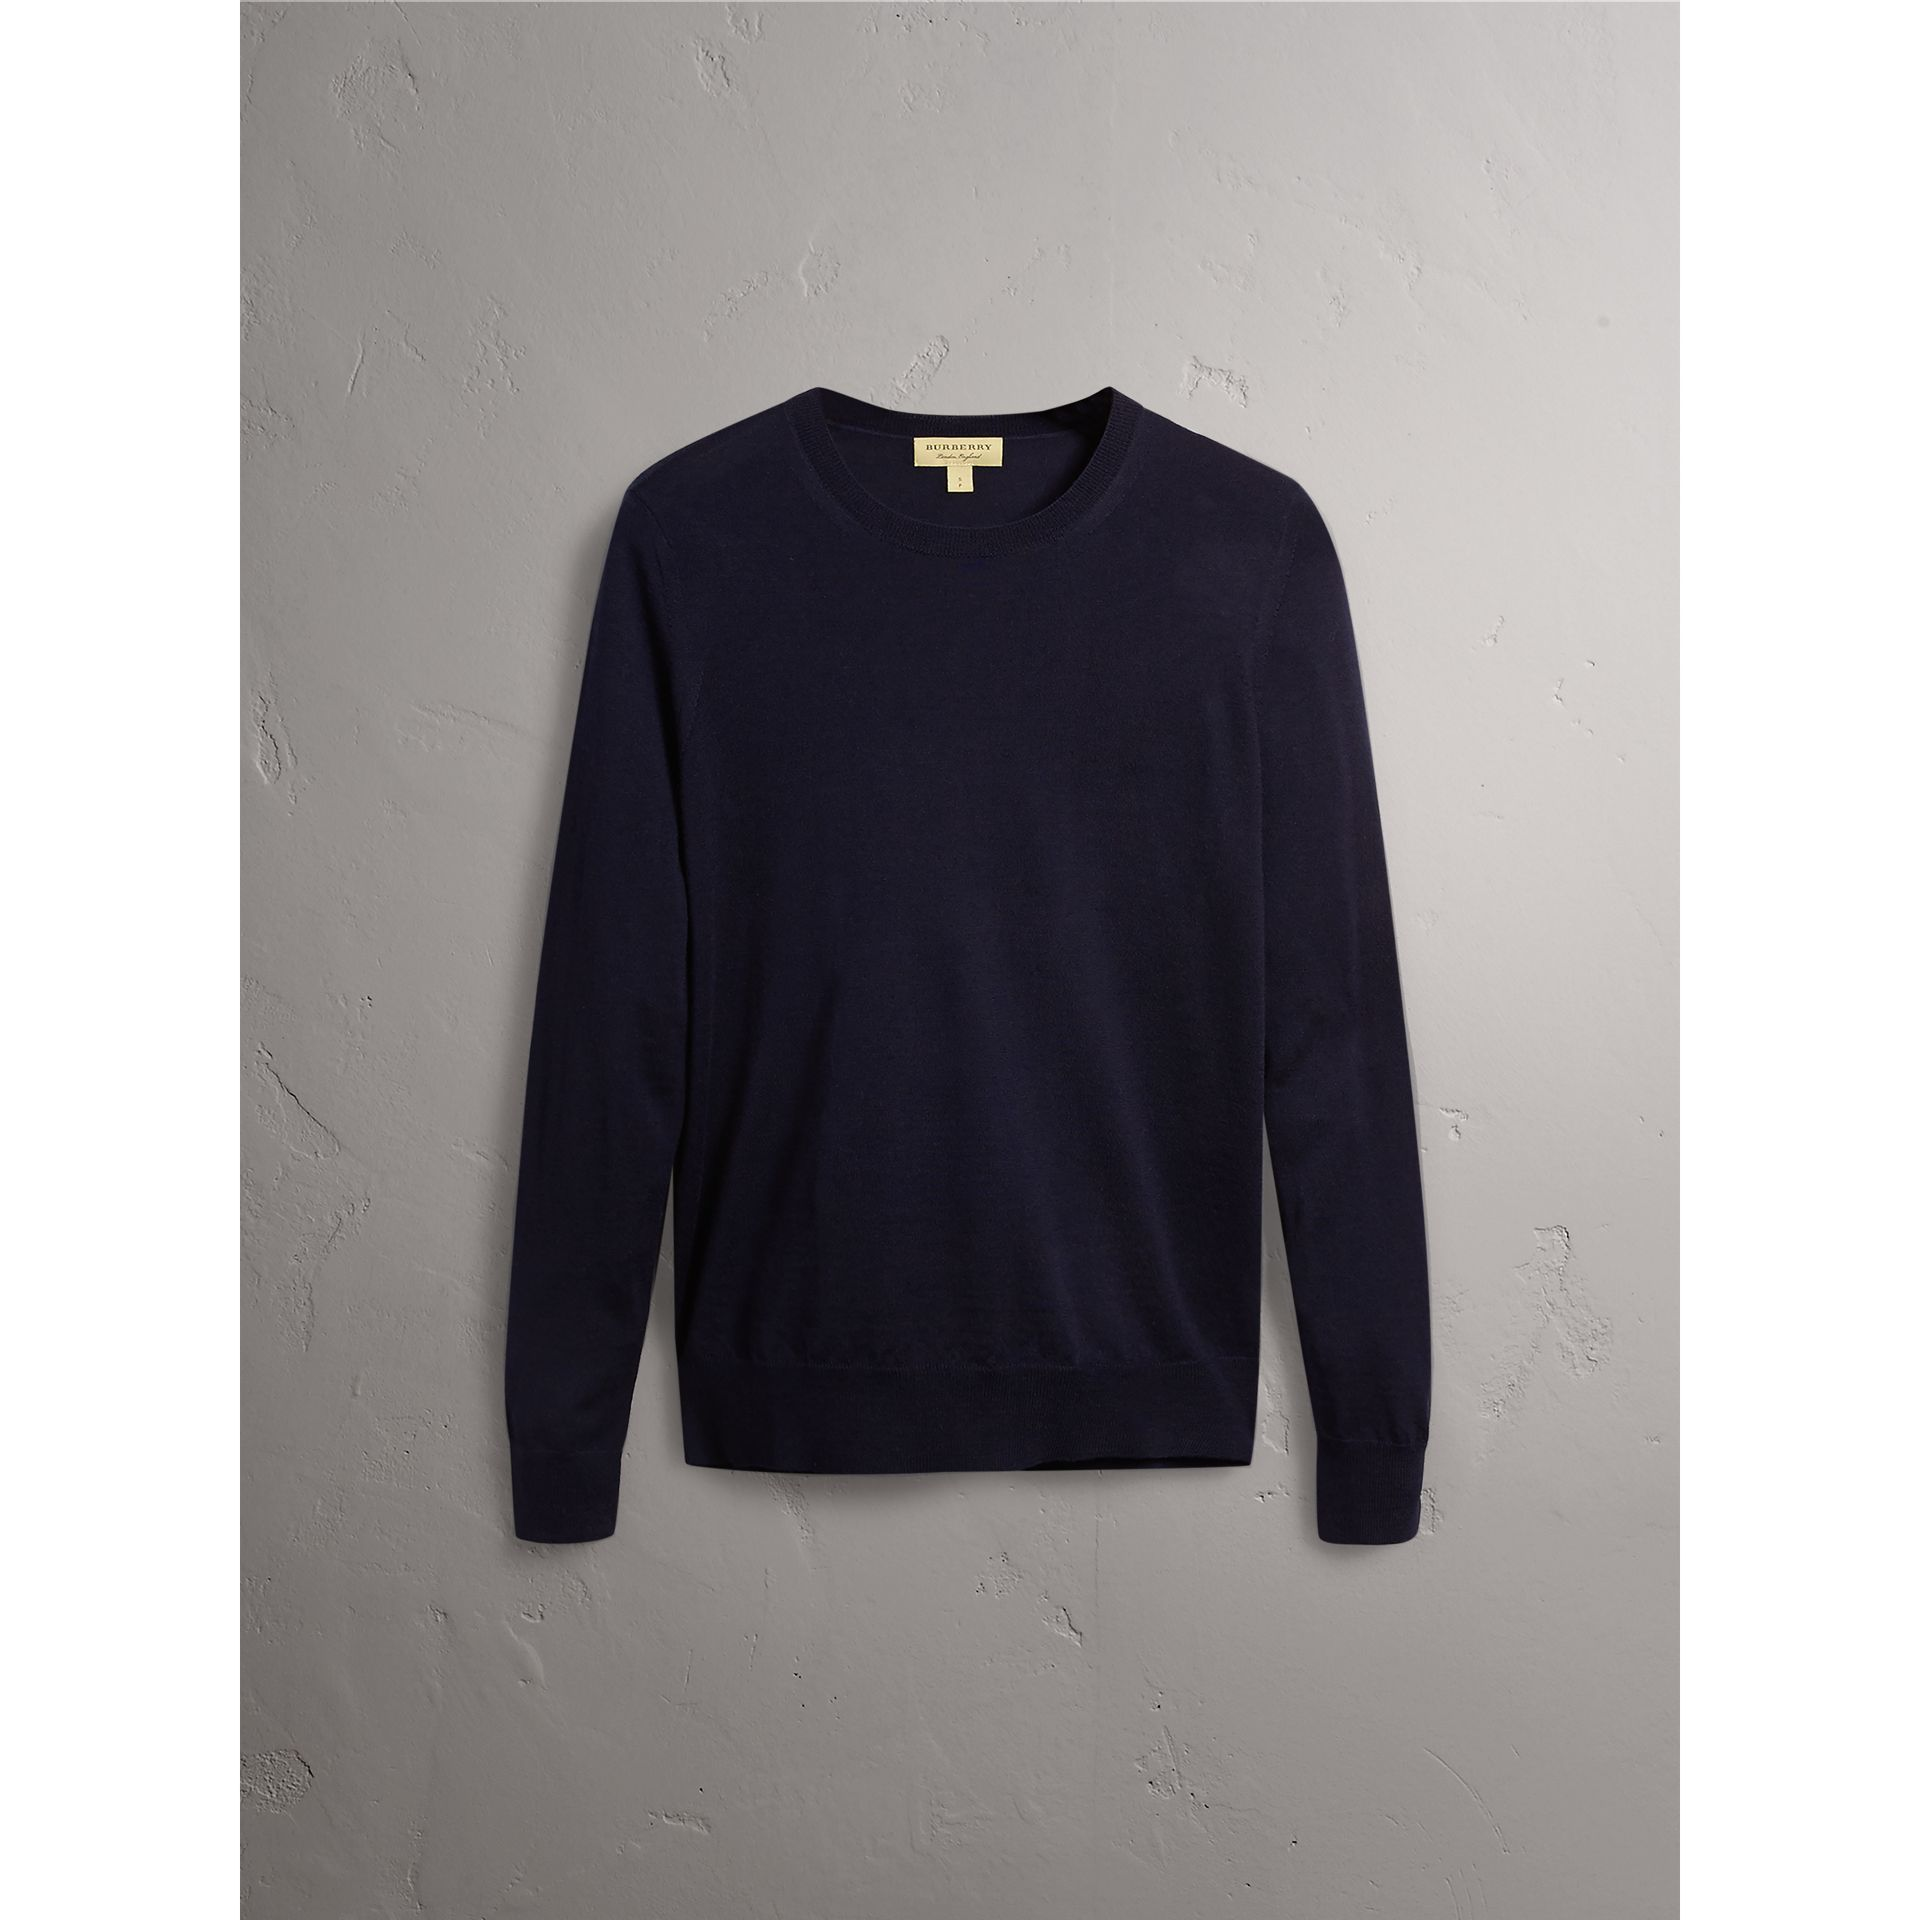 Check Detail Merino Wool Crew Neck Sweater in Navy - Women | Burberry Canada - gallery image 3